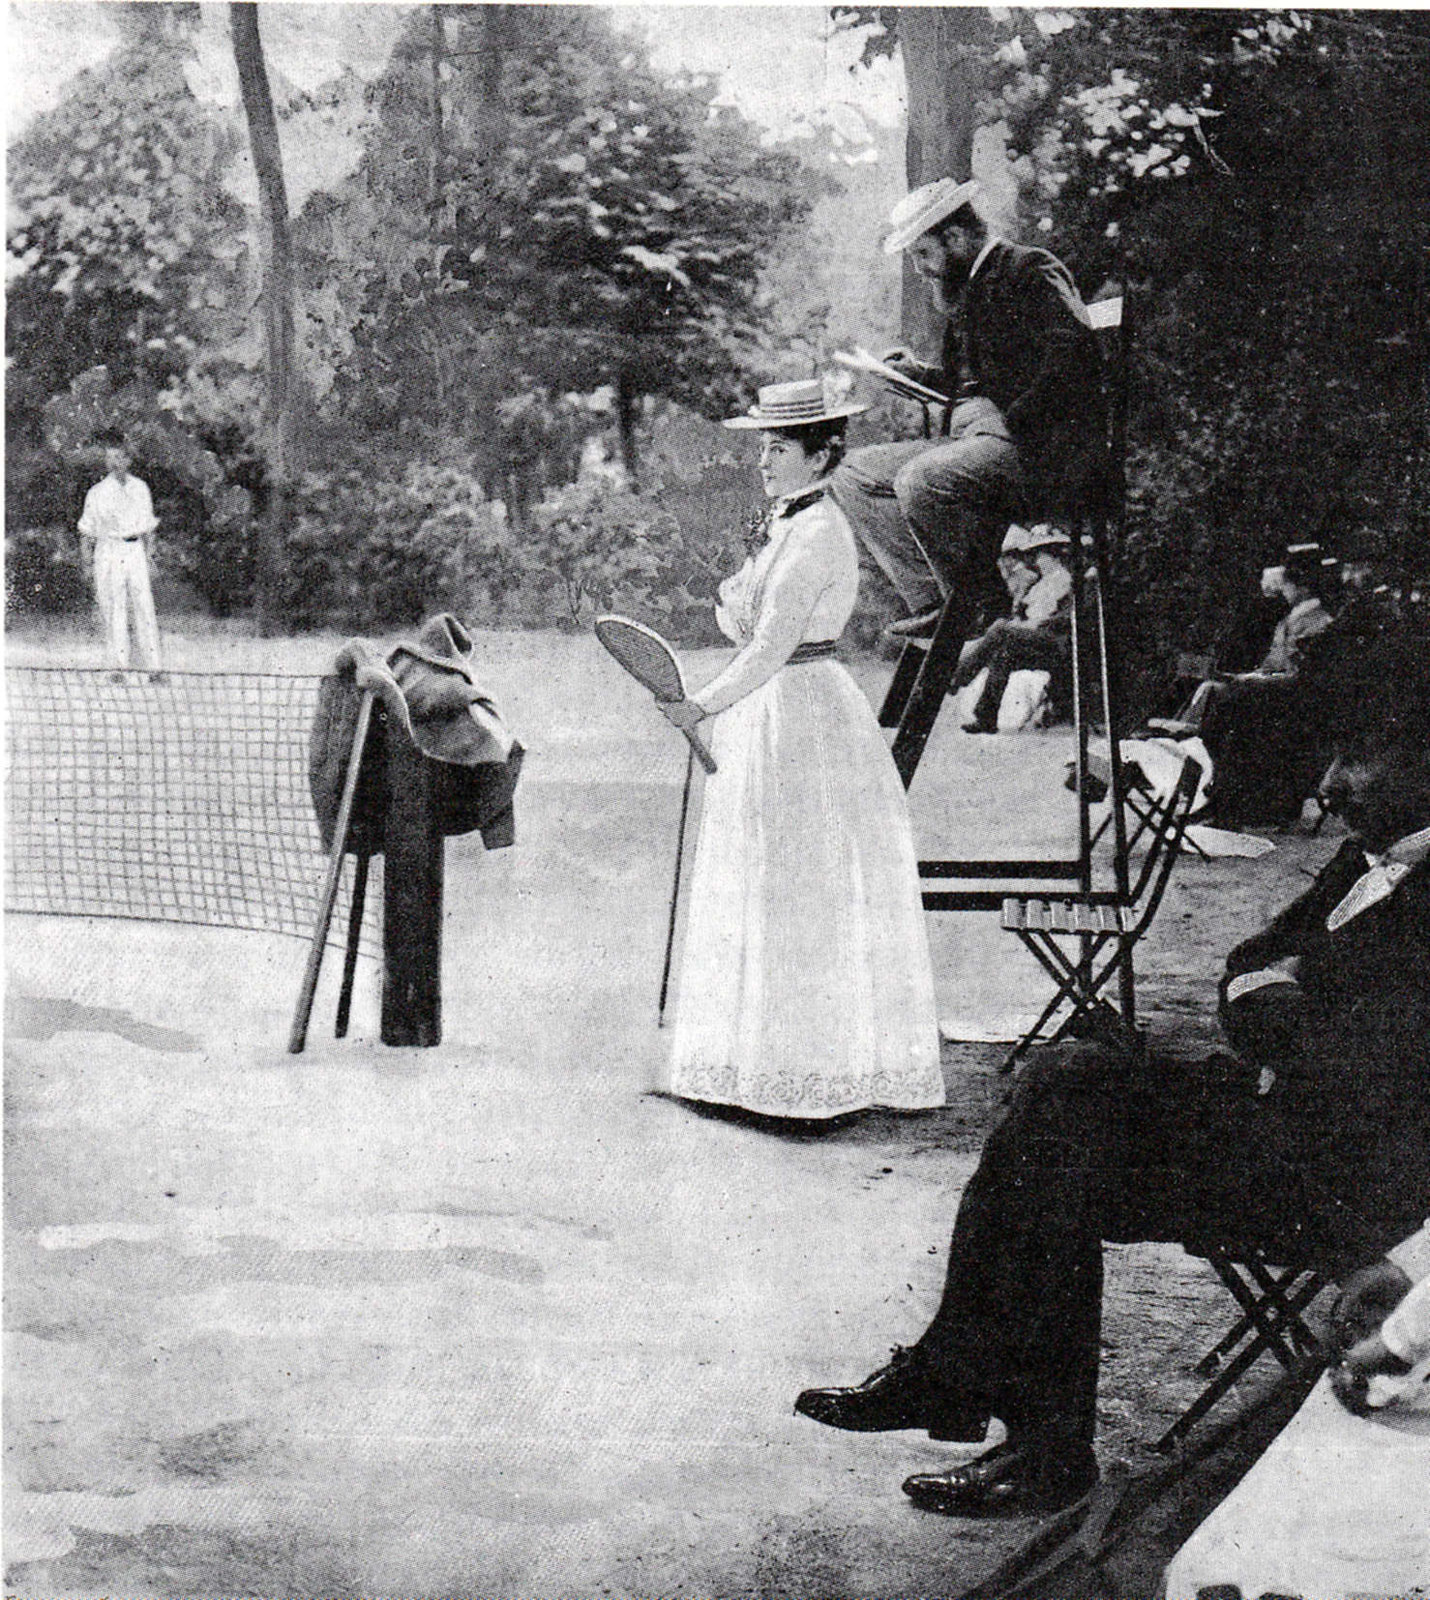 A. Gillou, French contestant, at the 1900 Olympic games Tennis tournament, at the Tennis court Cercles des Sports de l'Ile de Puteaux, Paris. Cover page of magazine La vie au grand air, No 97 from July 22nd, 1900.